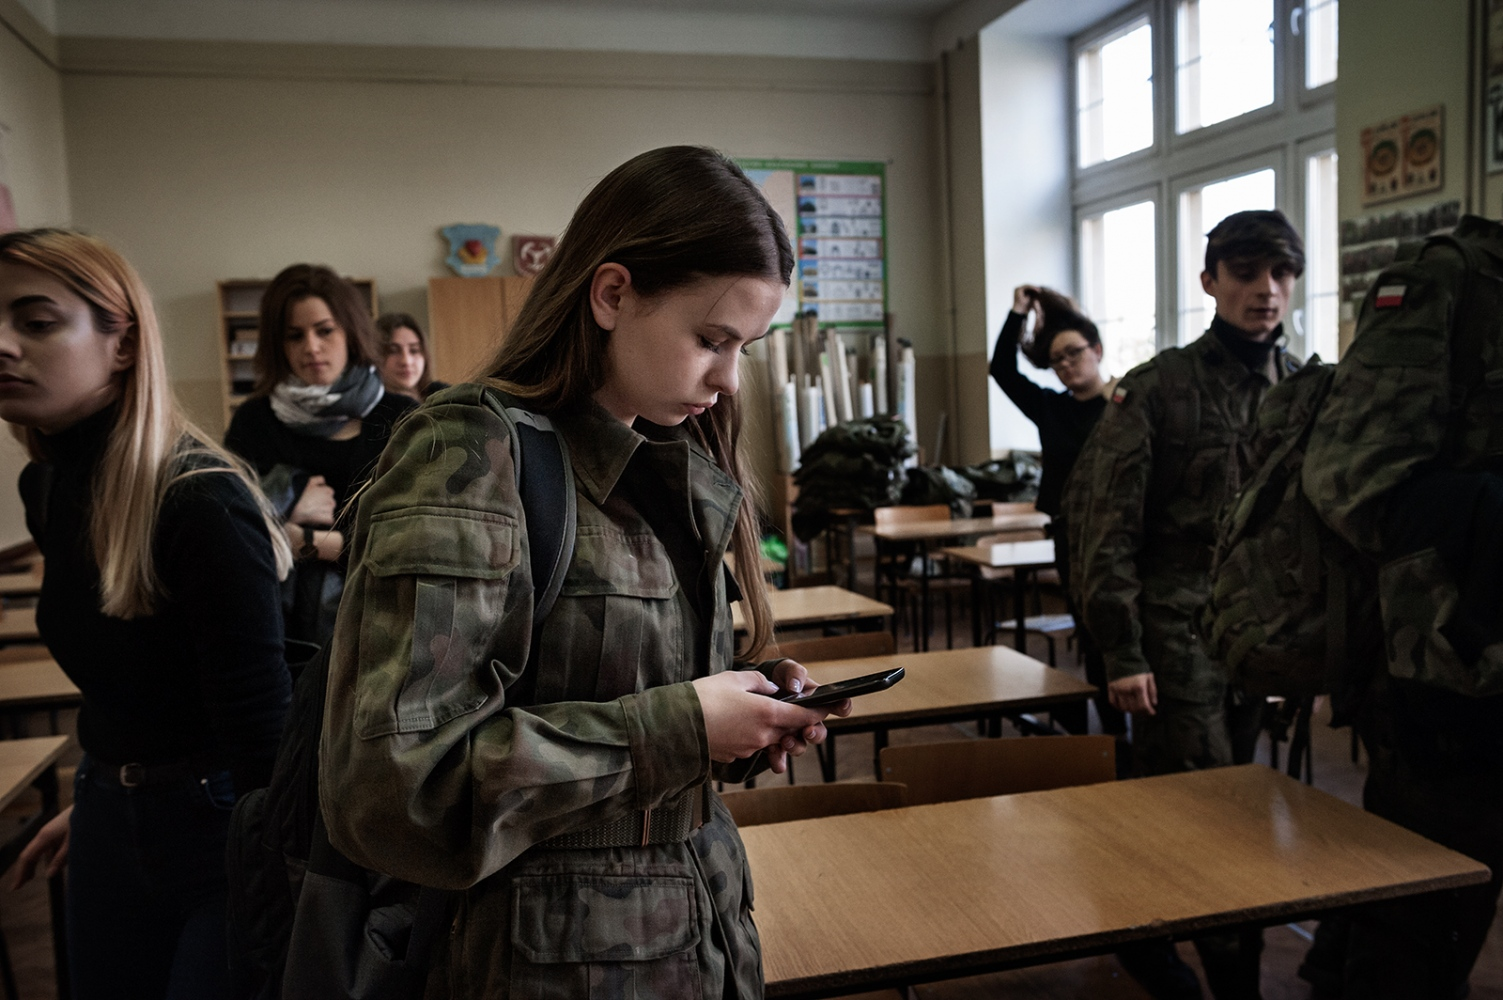 """One of the students (16 years old) of the """"Military Profile Classes"""" during the recreation (public high school in B.). In this school themilitary classes where created by M.B, professor of History and of the Education for security subject. M.B. was also one of the main promoters of paramilitary organization with which collaborates now the school."""